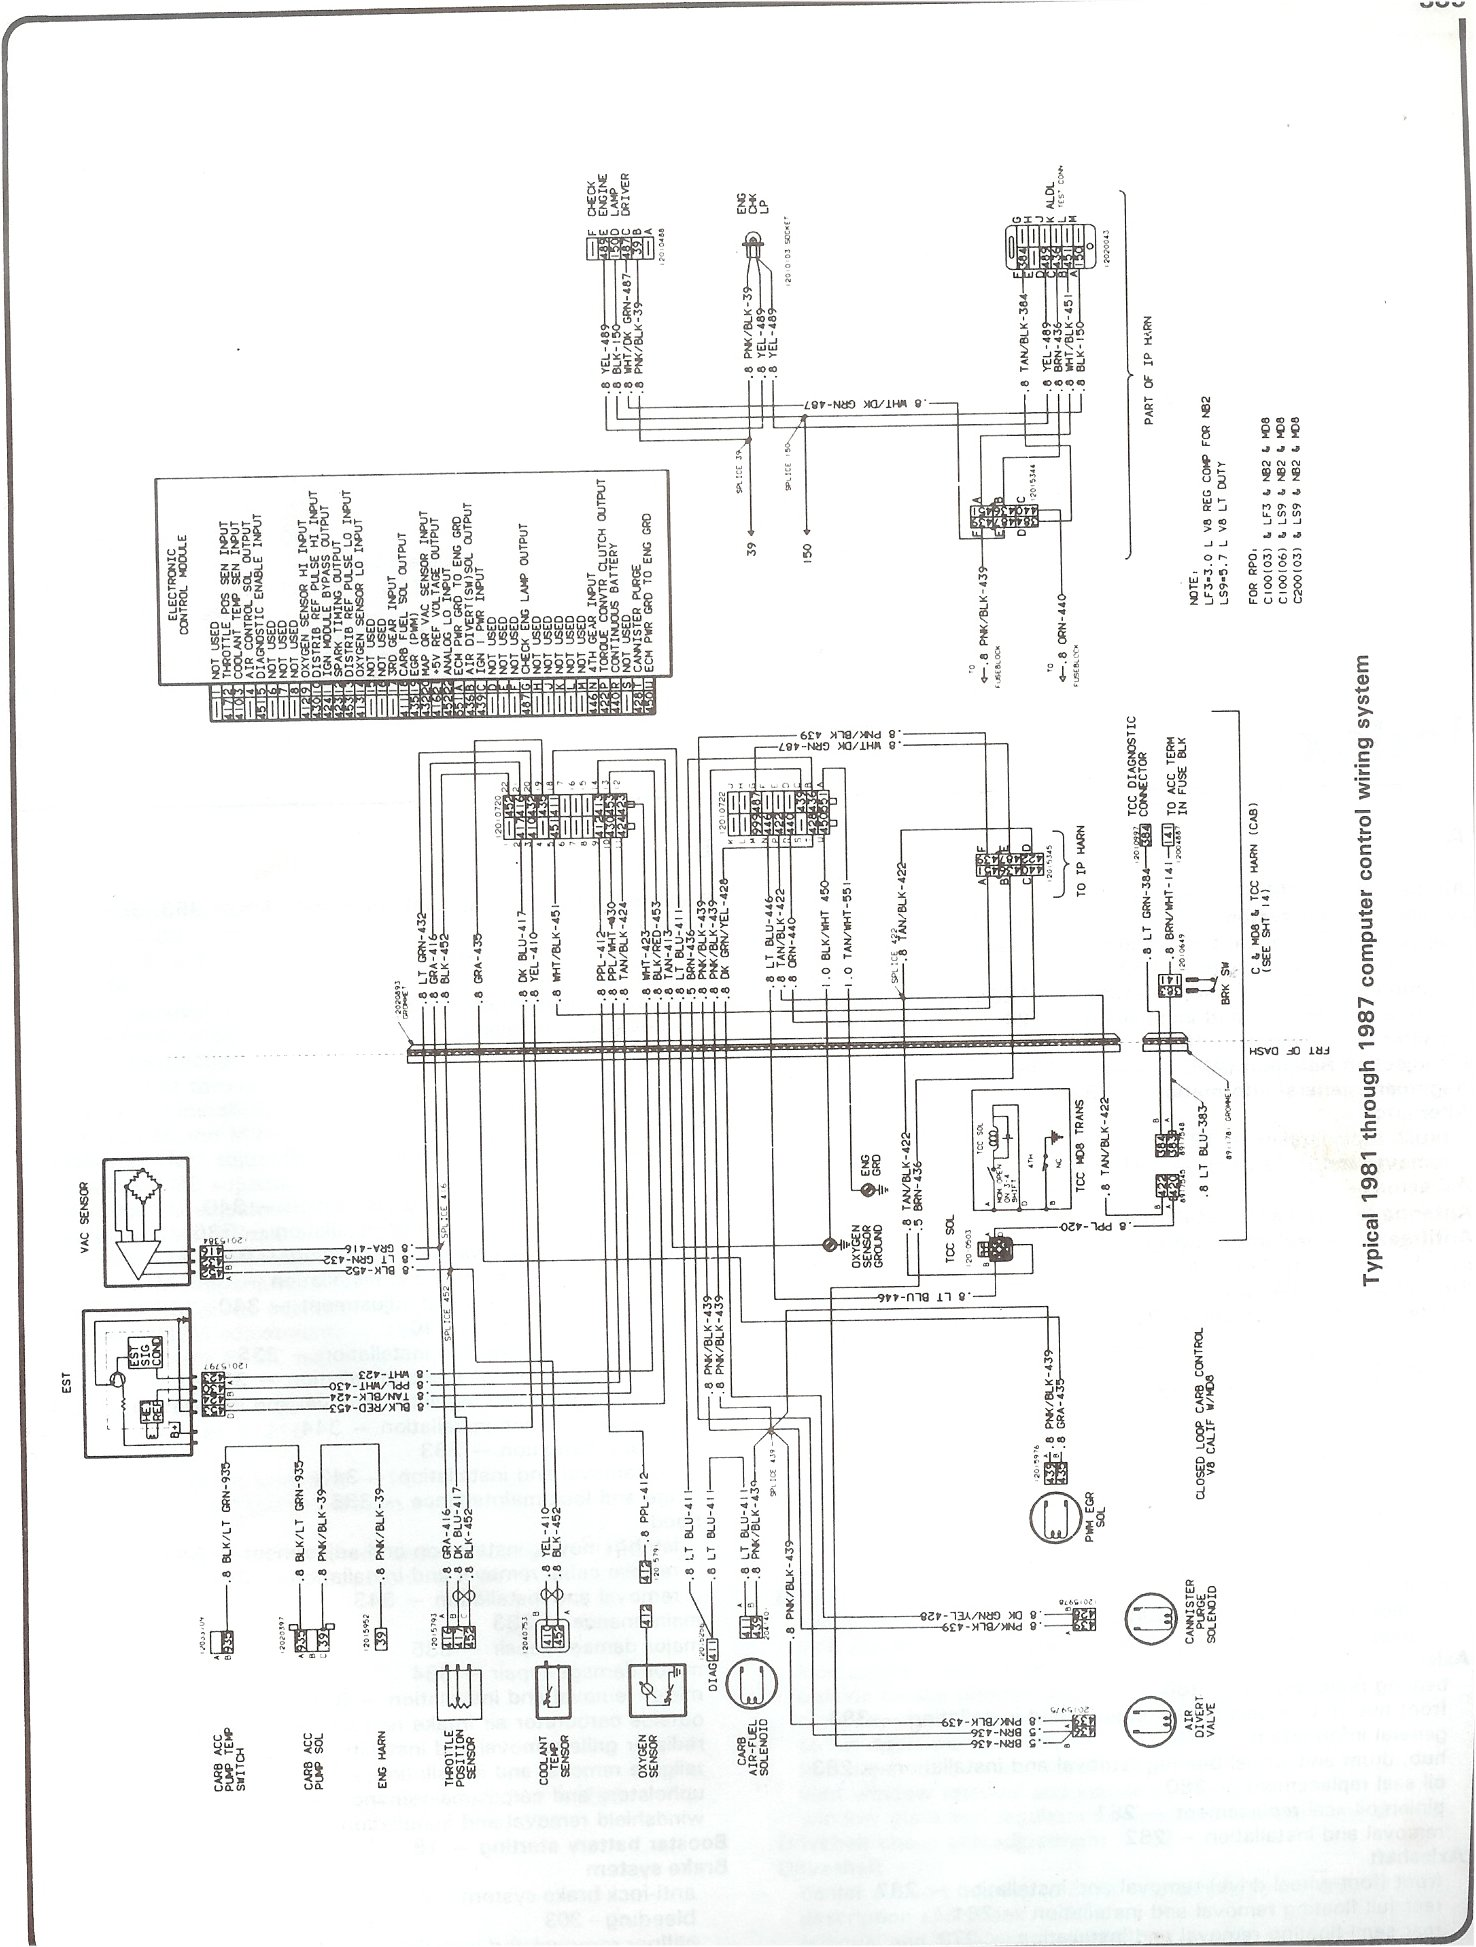 81 87_computer_control_wiring complete 73 87 wiring diagrams 1979 Pontiac Wiring Diagram at edmiracle.co